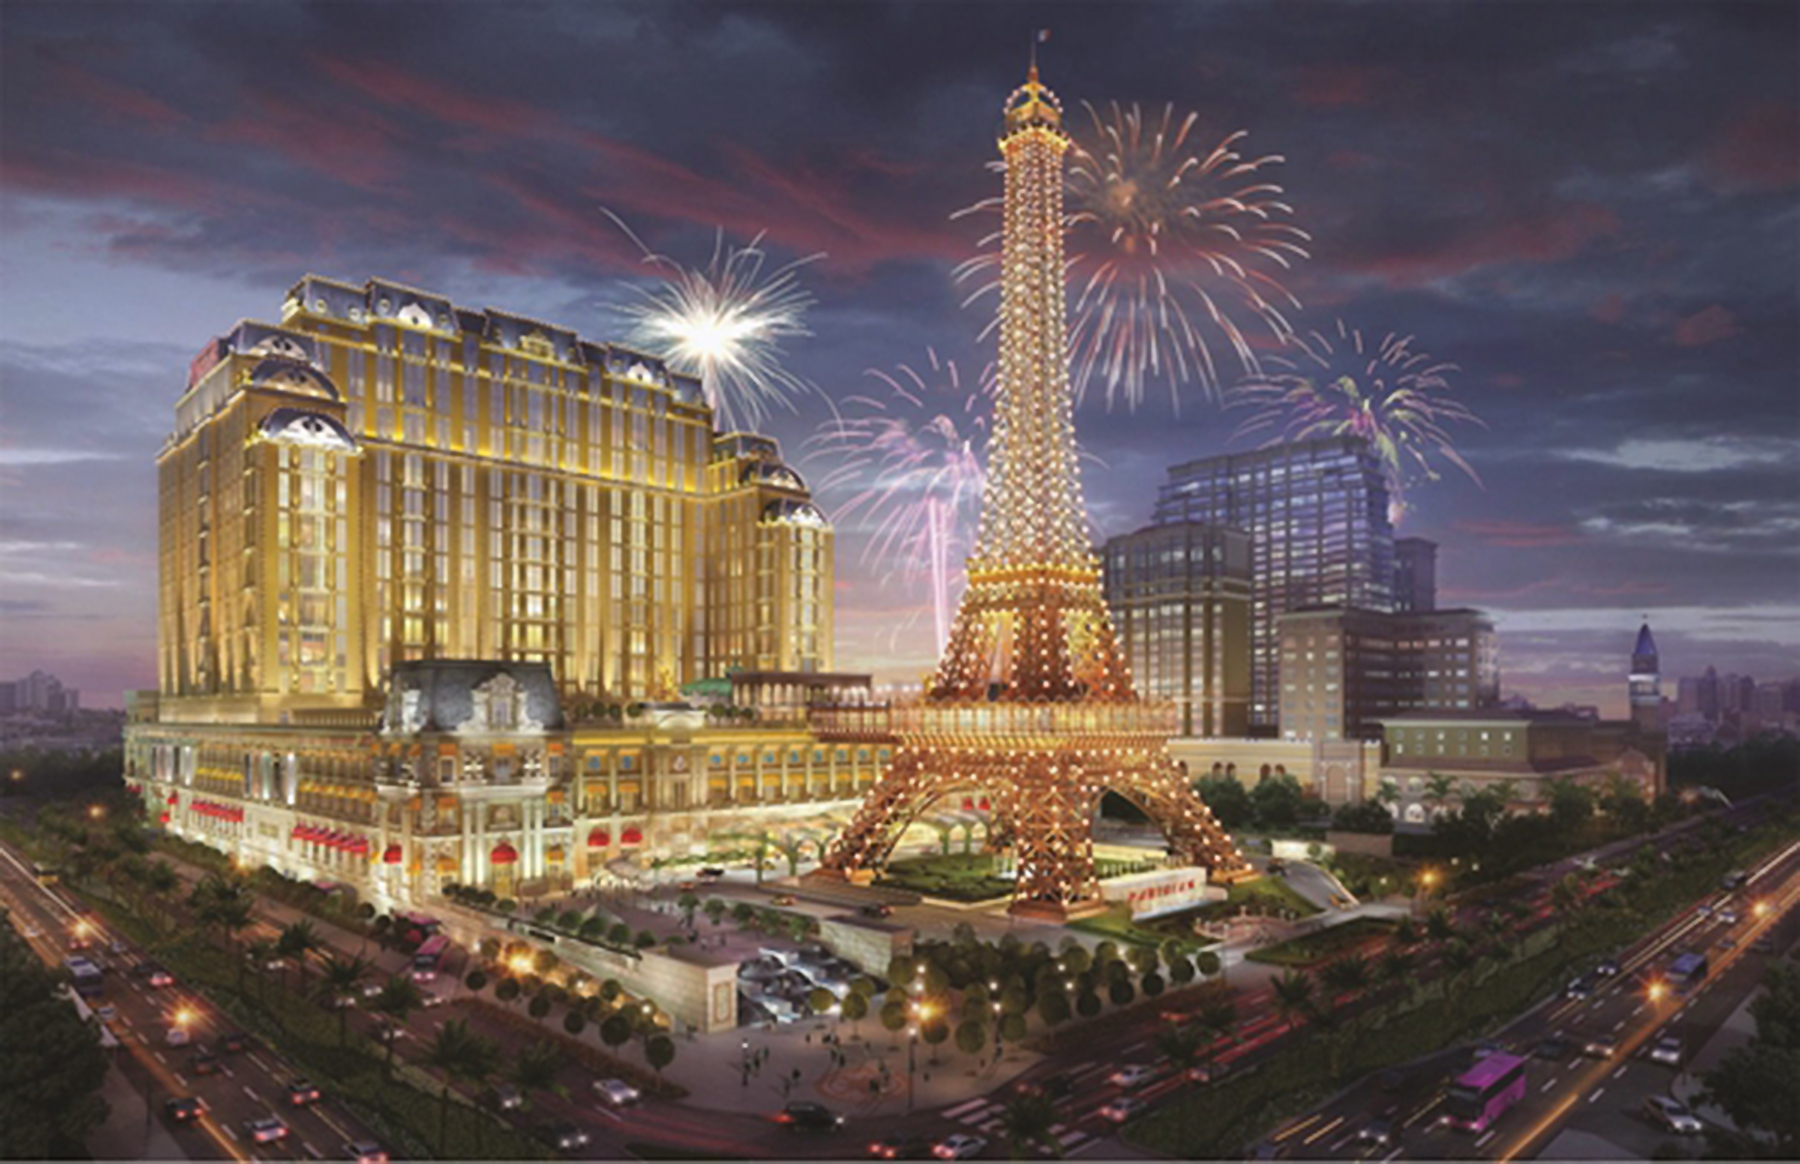 An artist's rendering depicts The Parisian Macao, slated to open in the second half of 2016. Image courtesy of Sands China Ltd